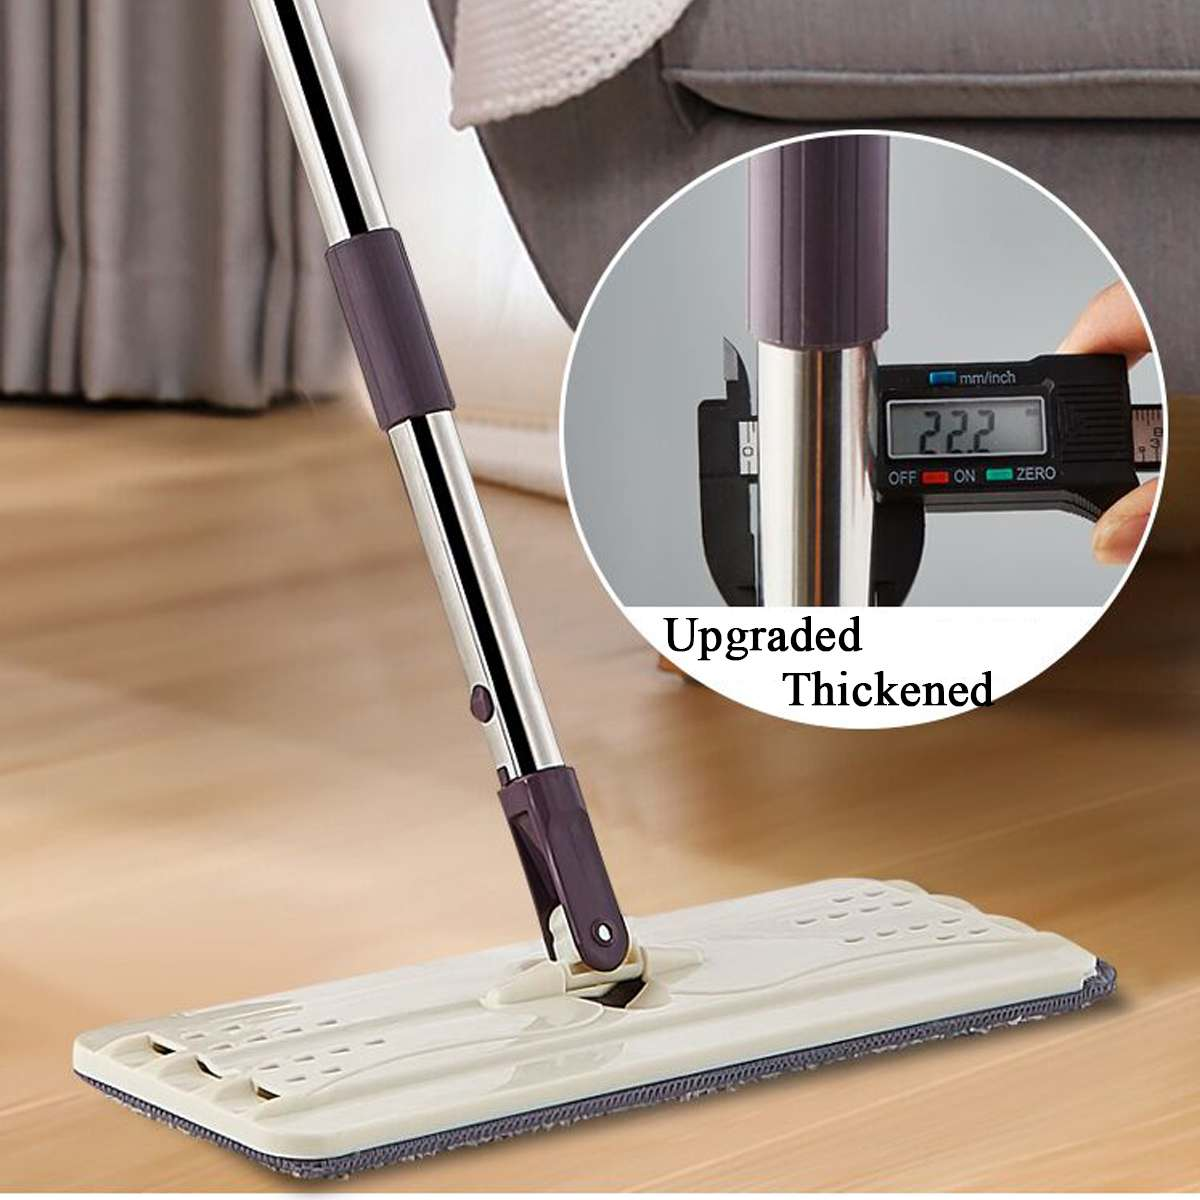 Hand-Free Spin Mop for Automatic Wet or Dry Mopping in 360-Degree Rotation Structure Design 2